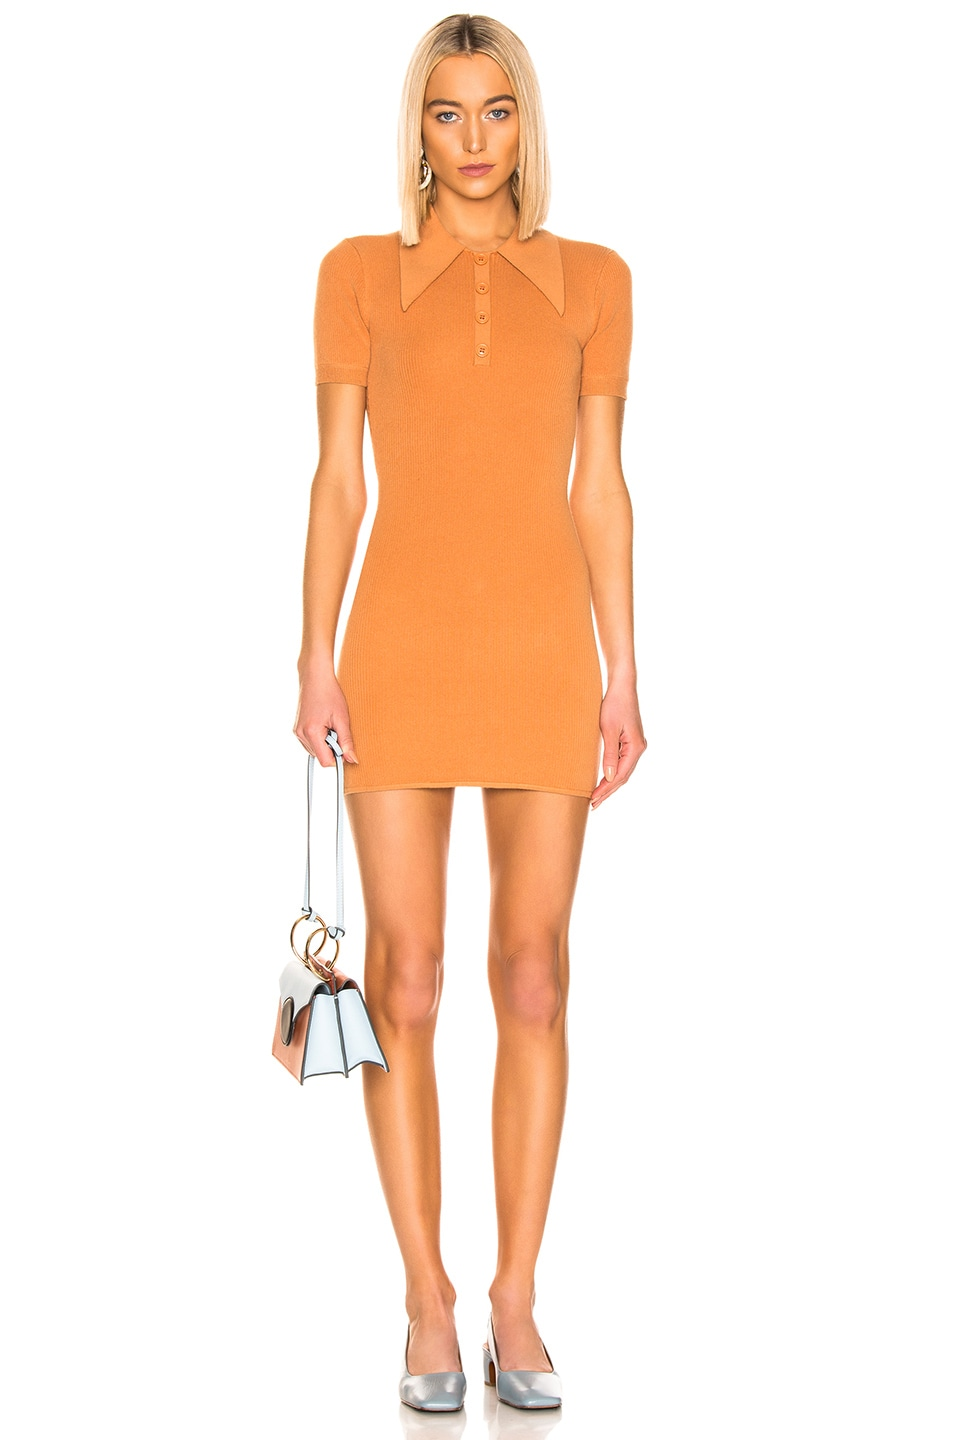 Image 1 of JoosTricot Polo Dress in Caramel Sauce